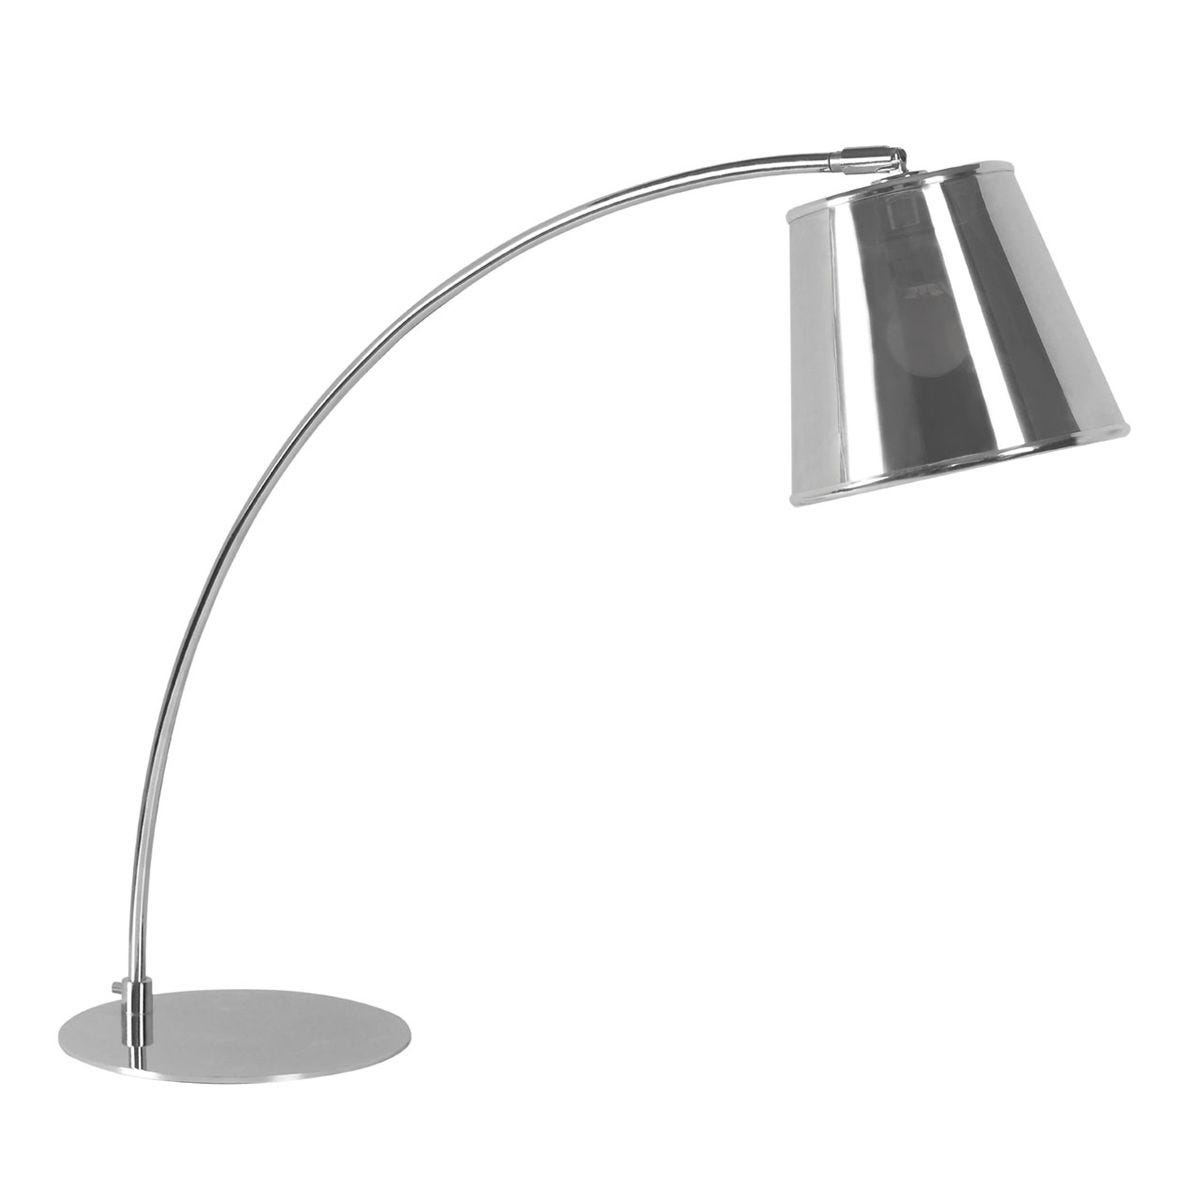 Premier Housewares Table Lamp in Chrome with PVC Shade